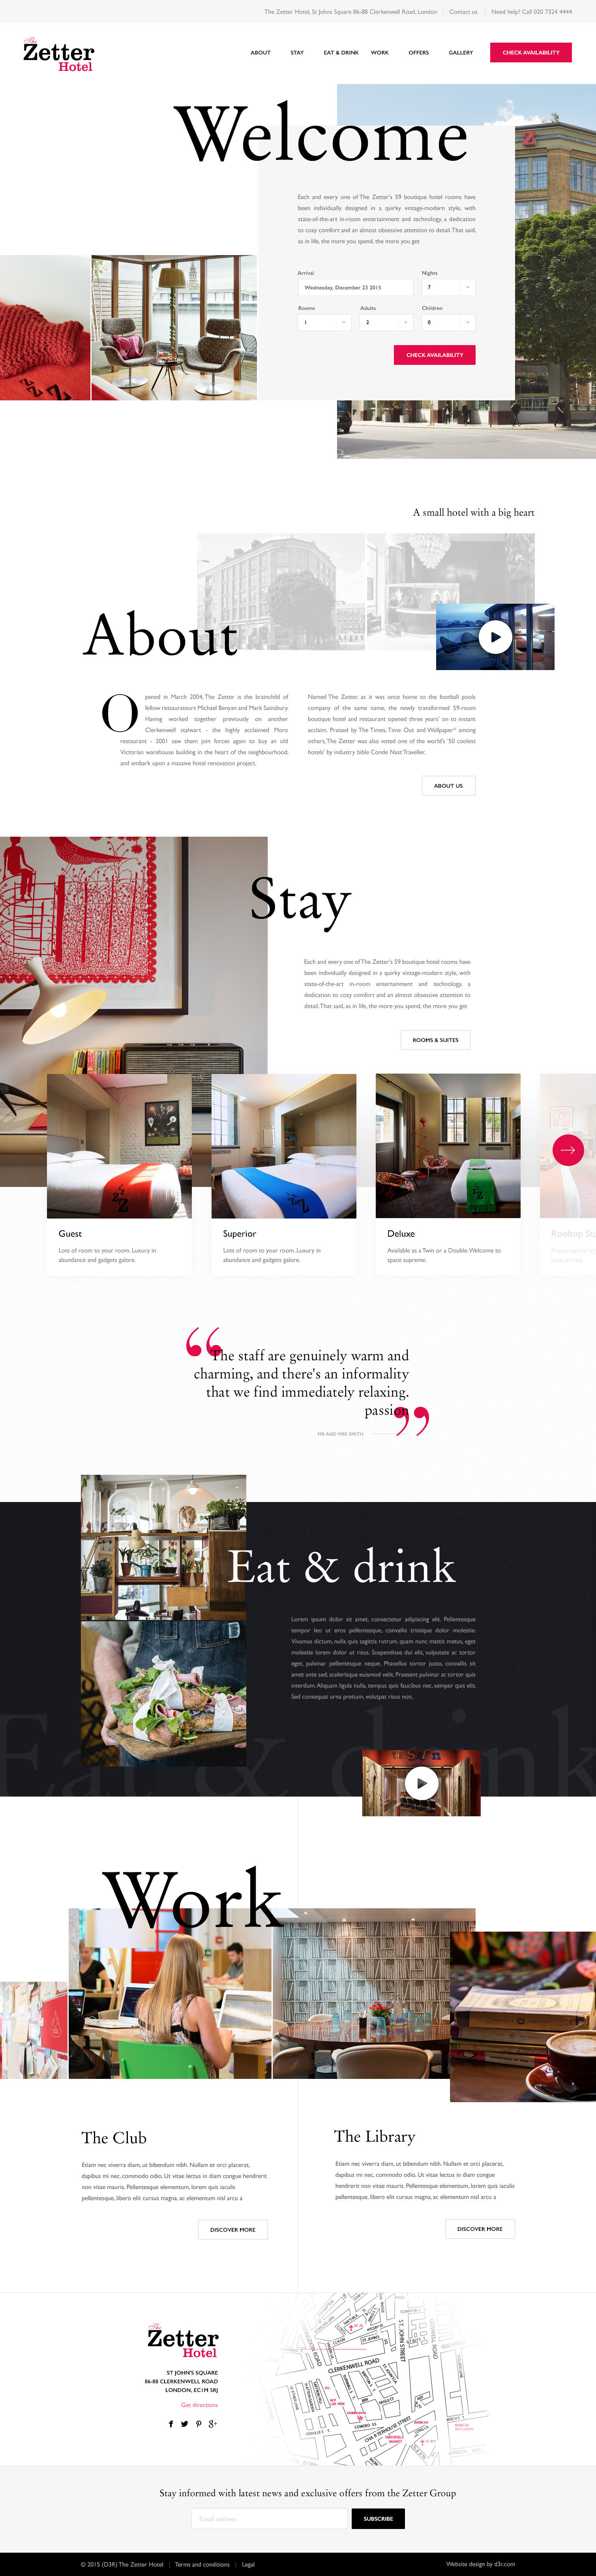 The Zetter Hotel - Homepage pitch